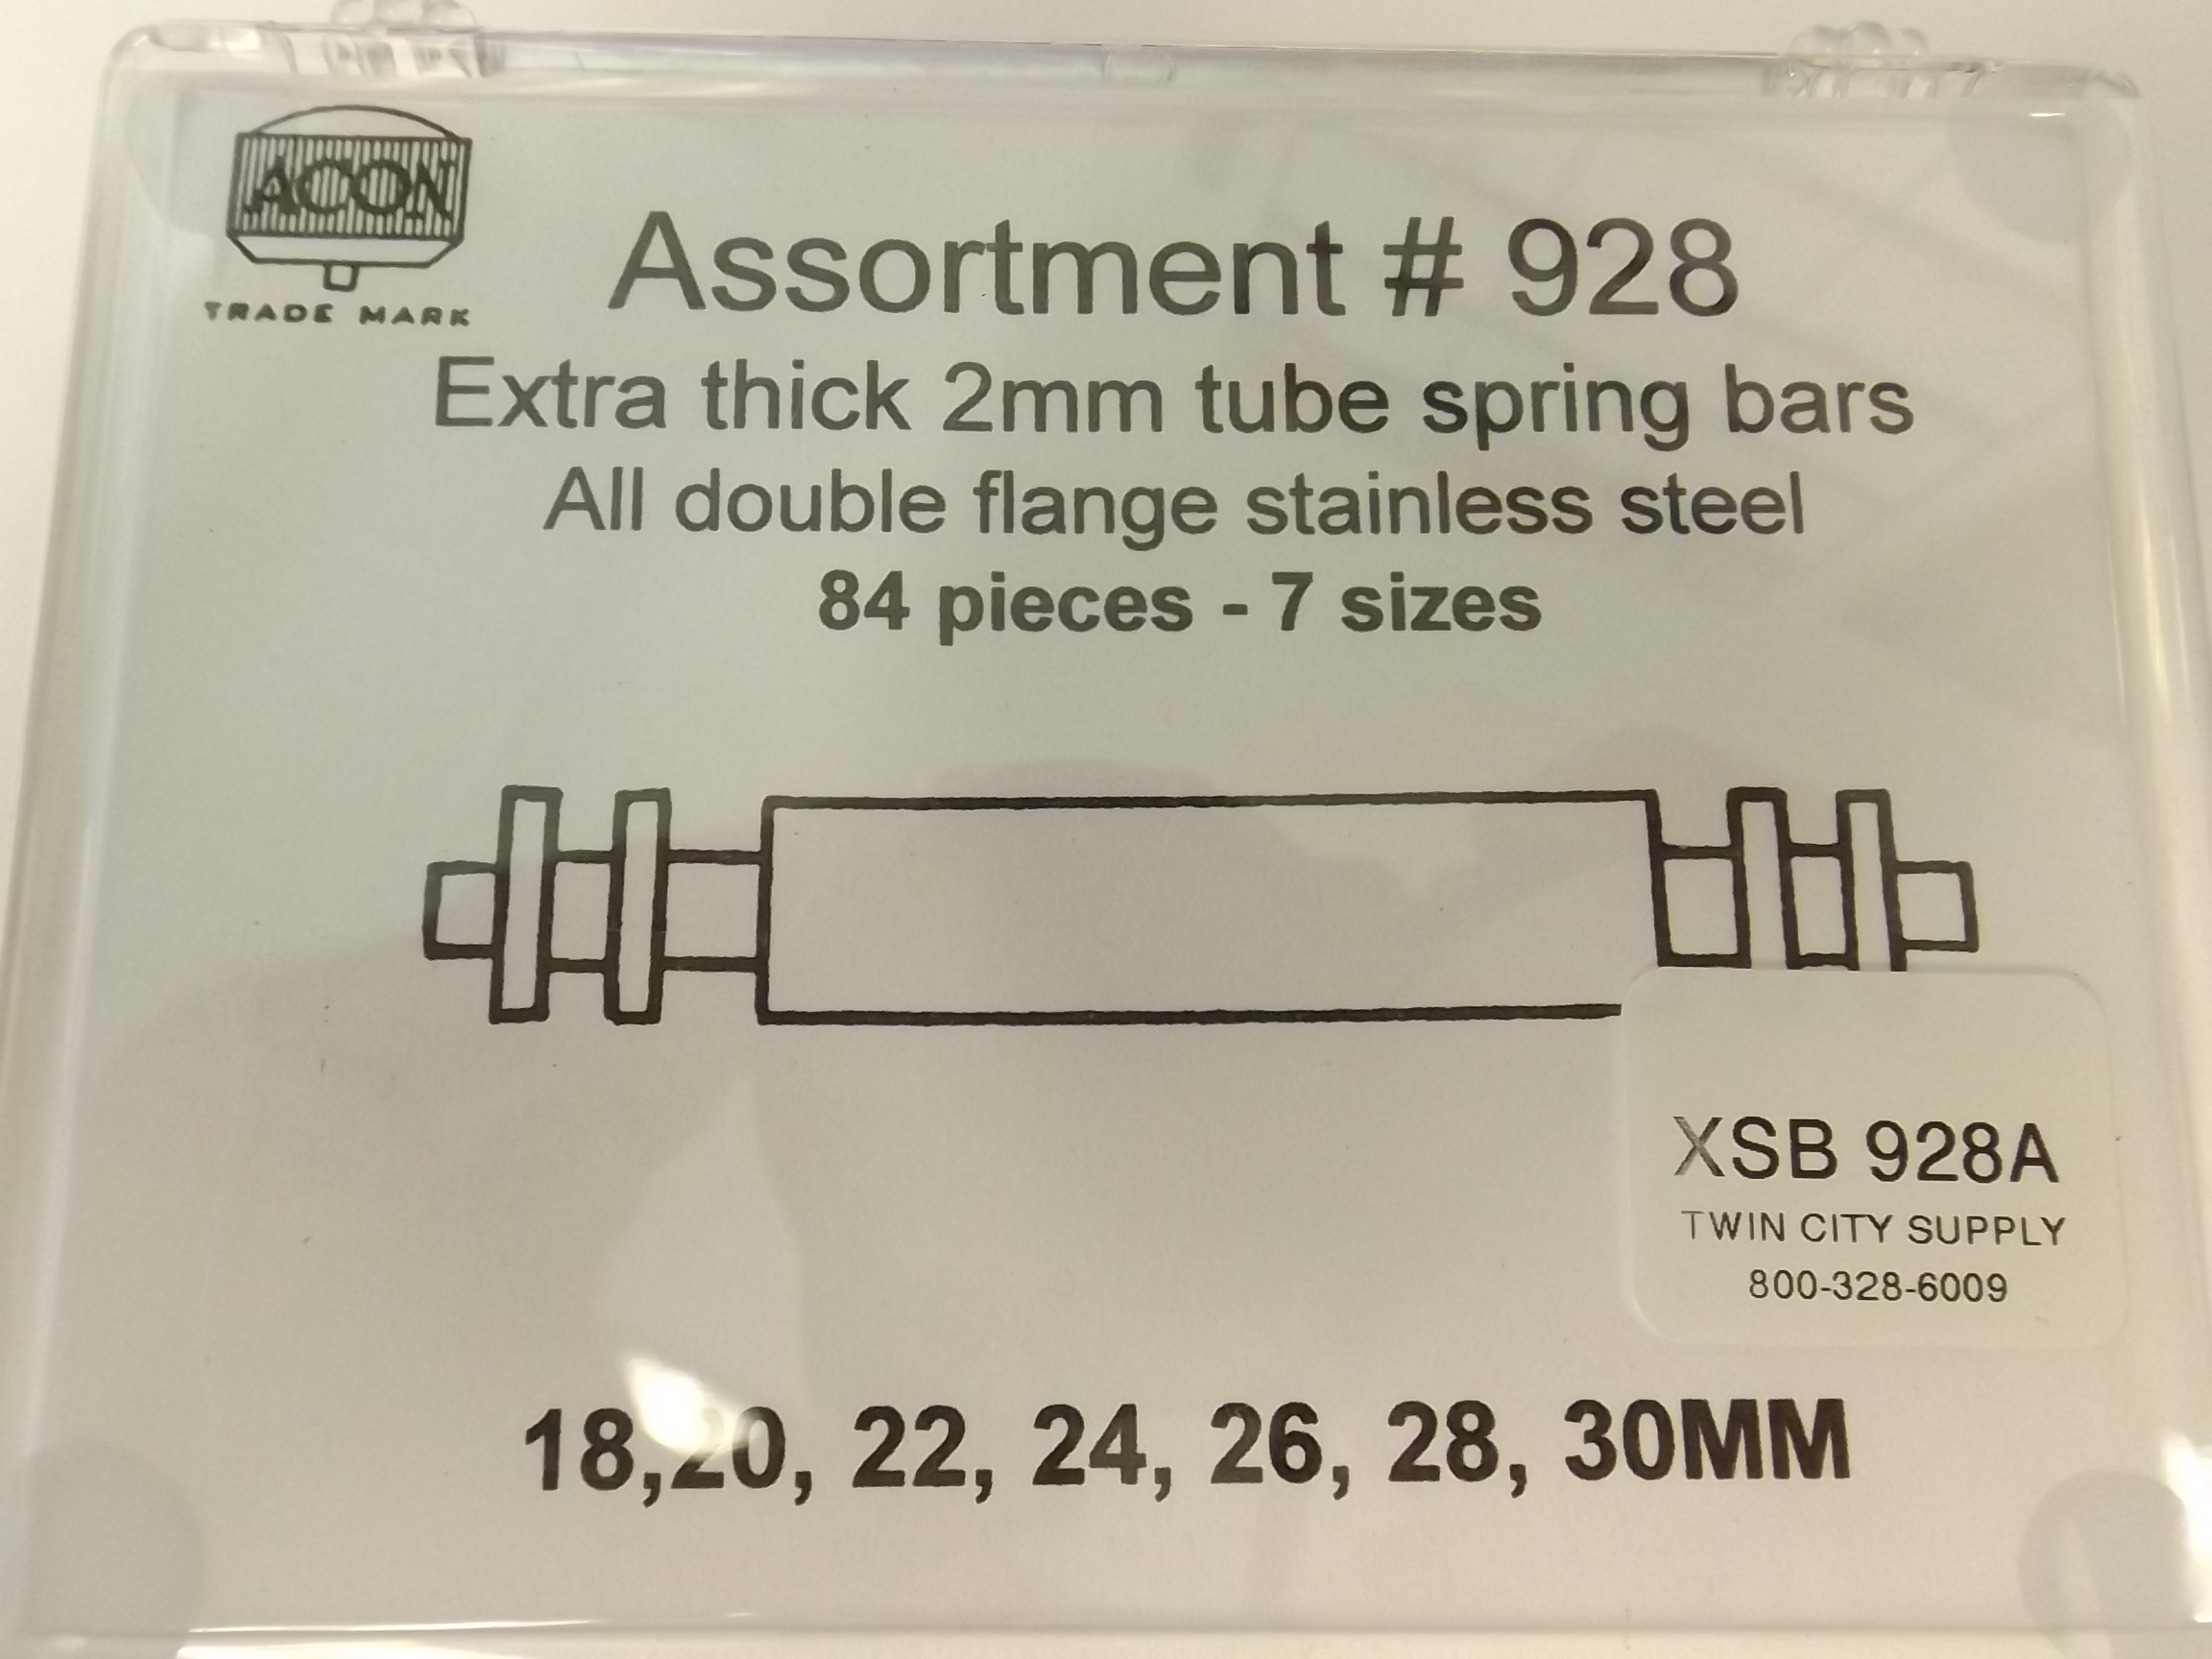 XSB928A New! Extra Thick Spring Bars Assortment--2 MM Tube- Acon # 928